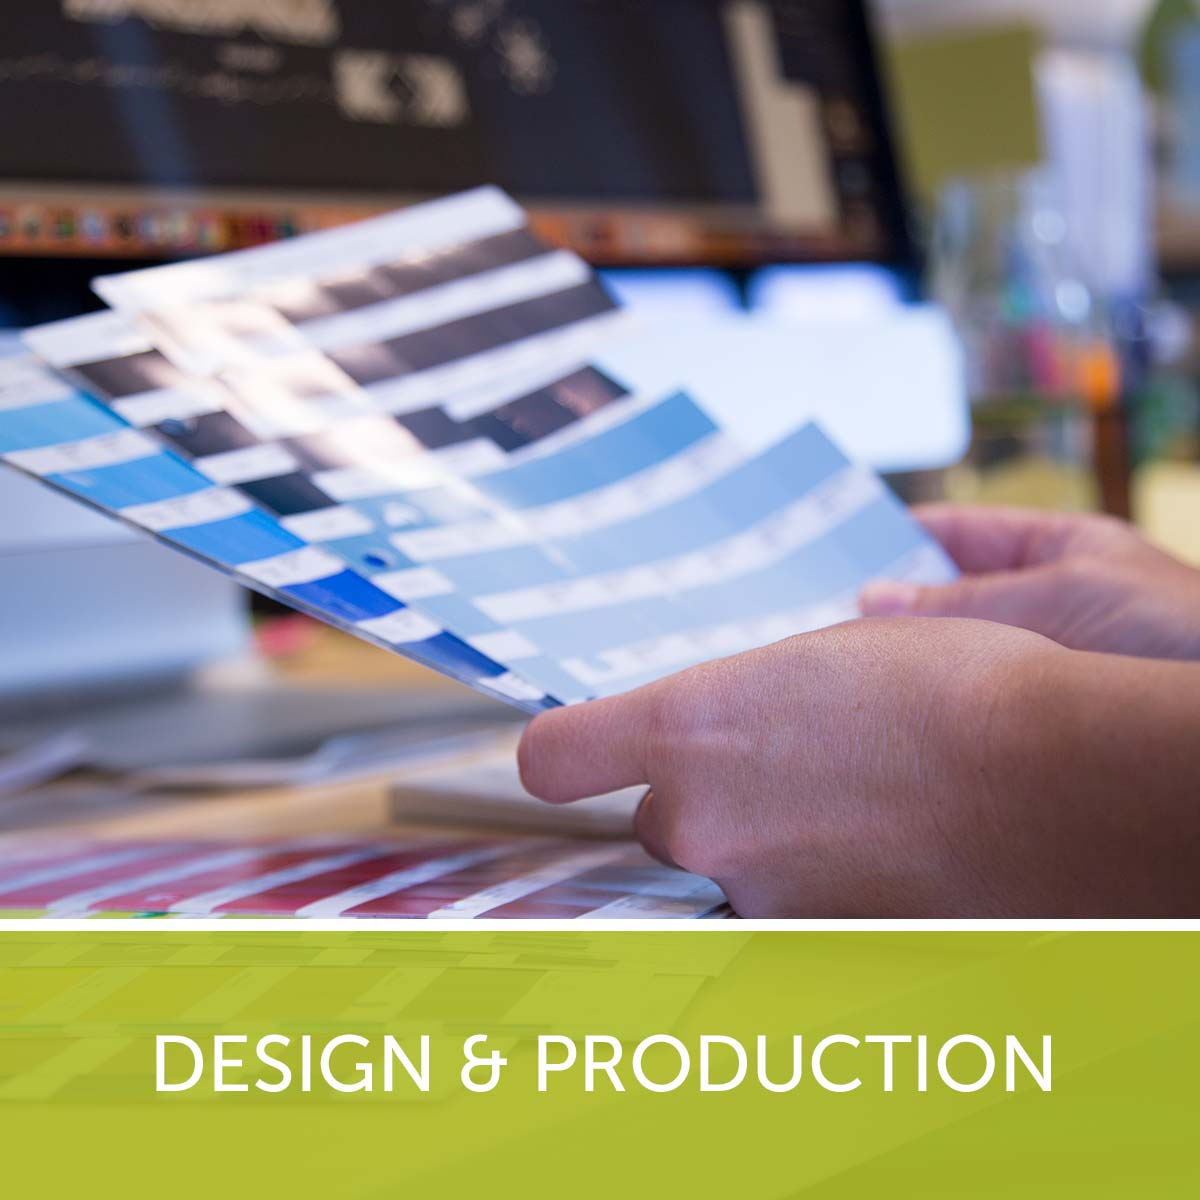 Design & Production: Hands Holding Color Swatches